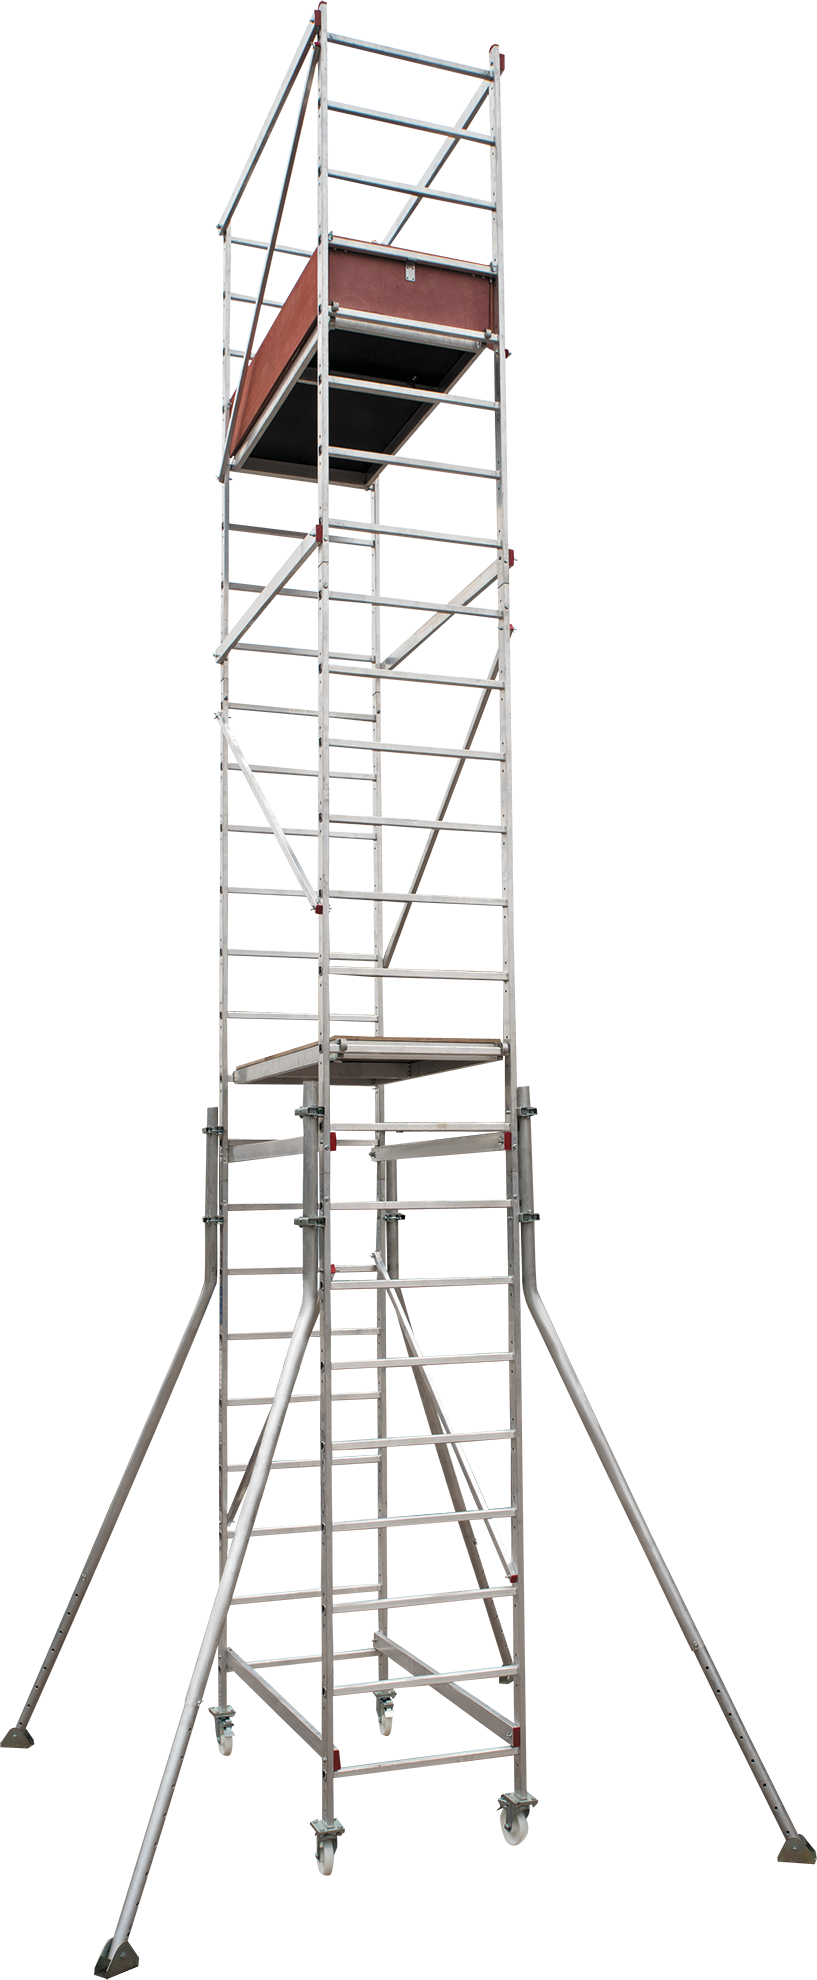 Scaffold-tower with the working height of 7 m NV 5470